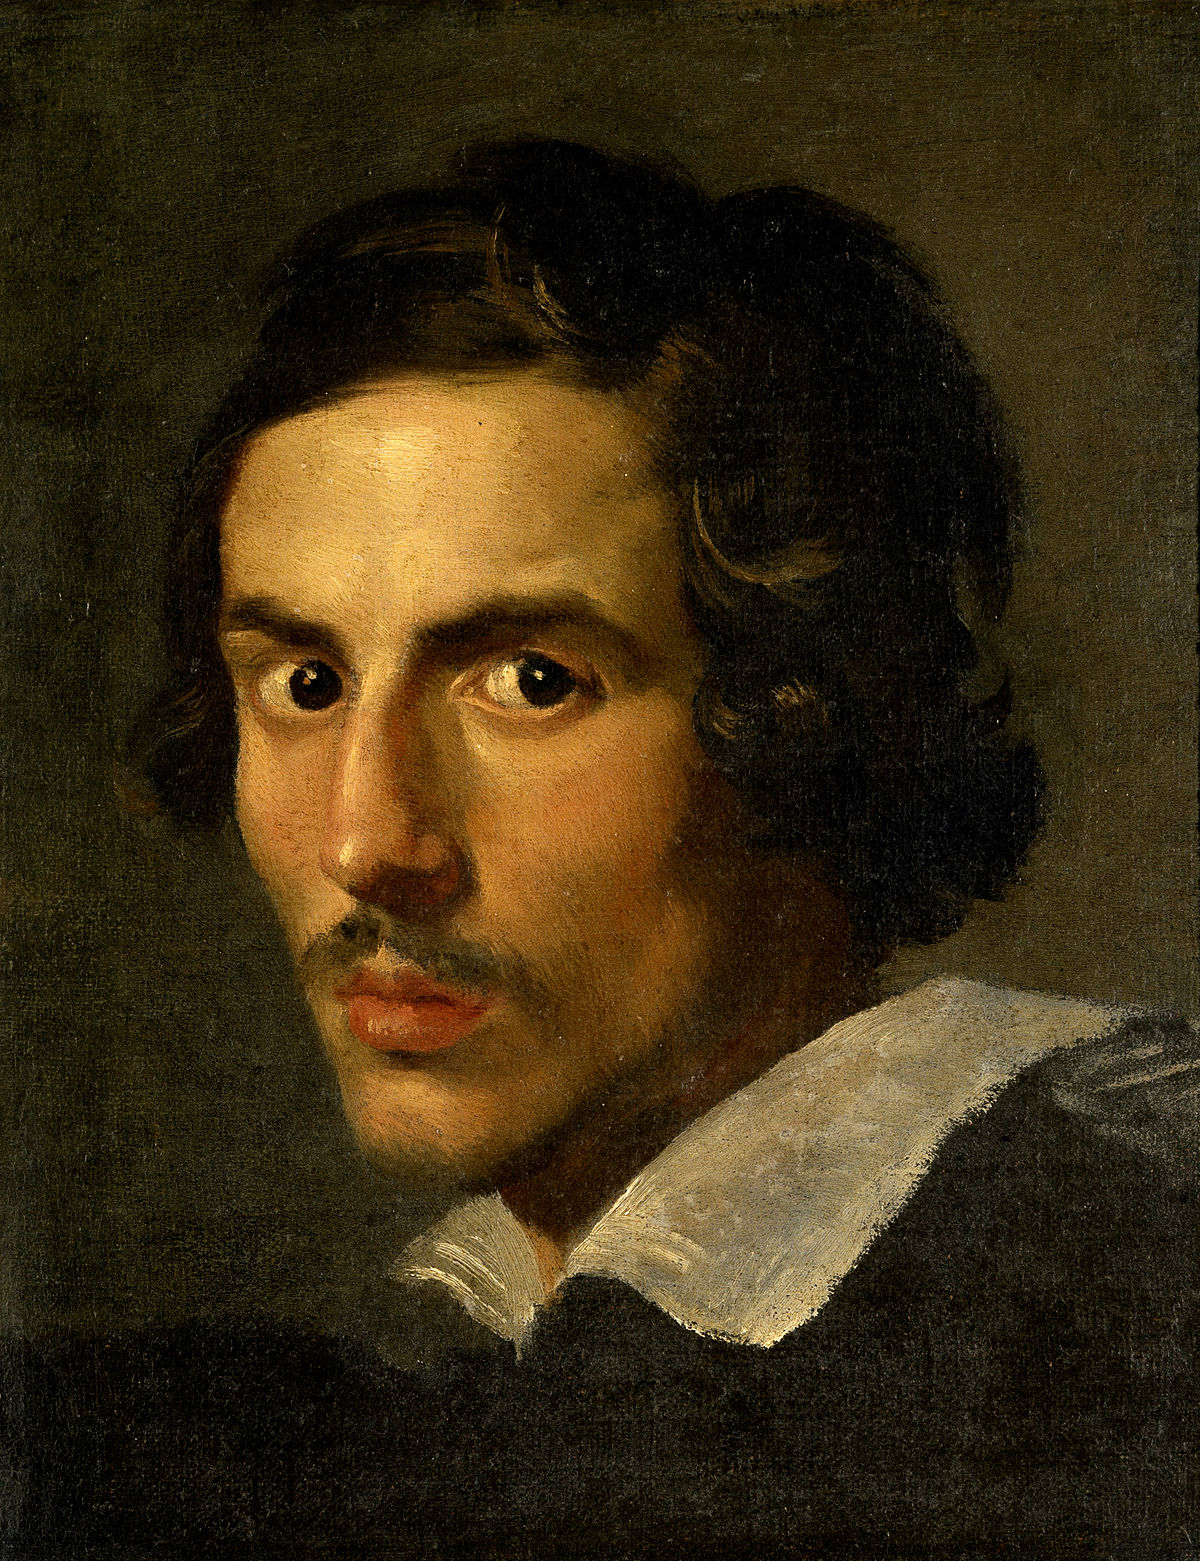 Gian Lorenzo Bernini Wikipedia - 24 amazing celebrity portraits made using unusual materials